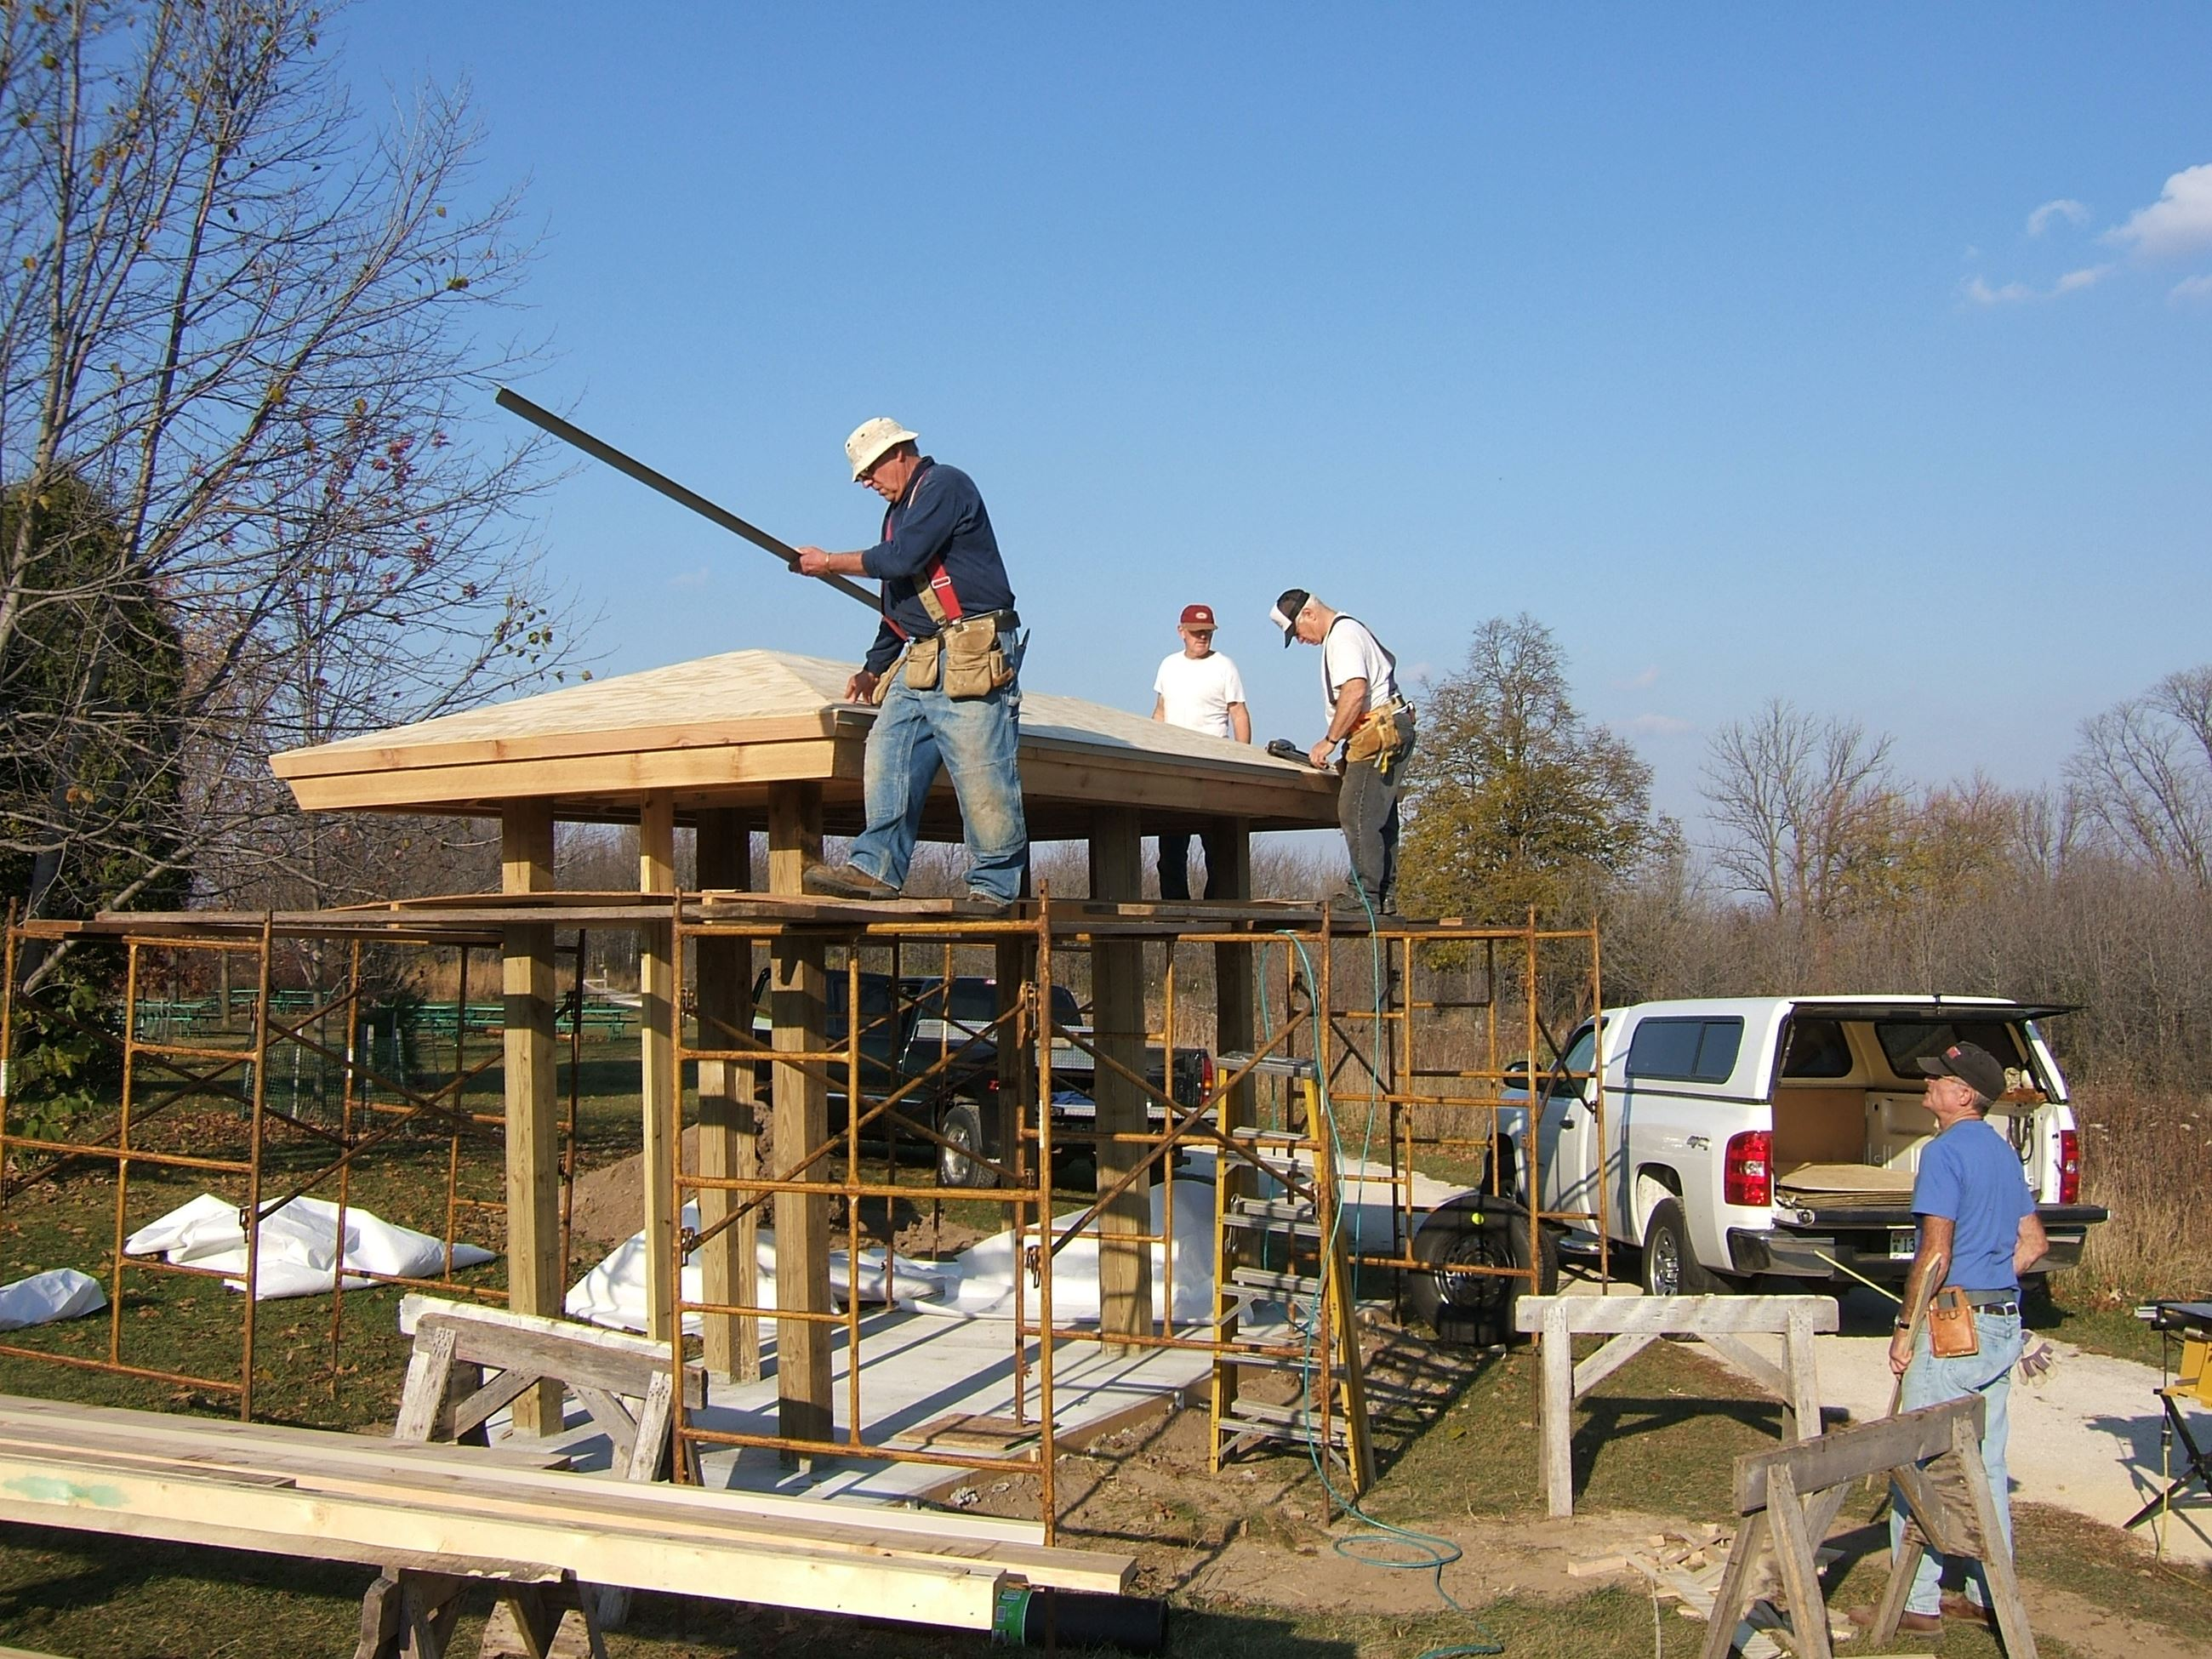 Four me building a kiosk. 3 are standing on scaffolding and working on the roof, 1 is on the ground